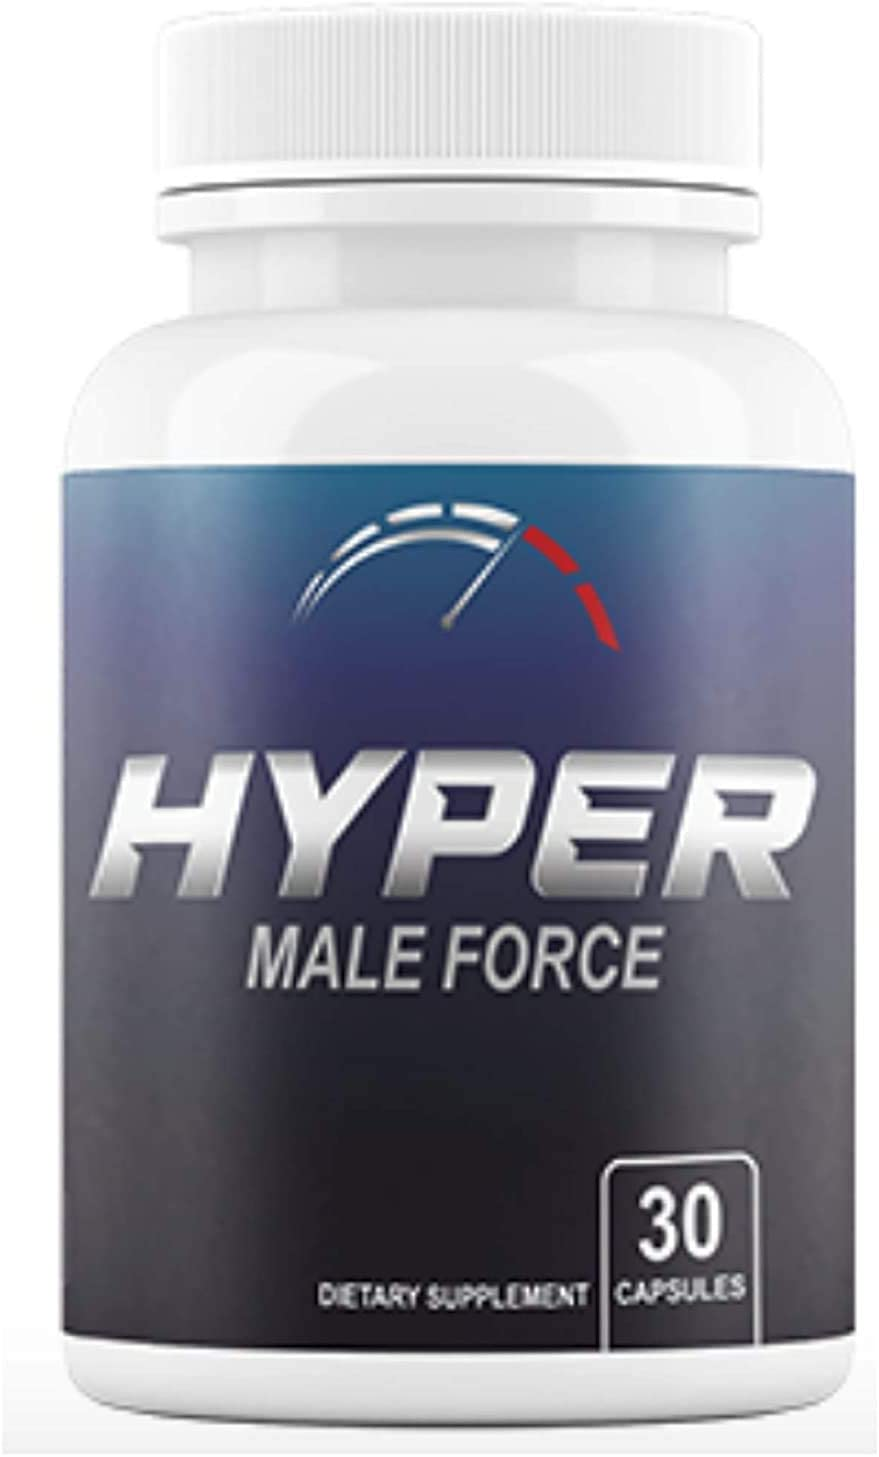 Commentaires Hyper Male Force